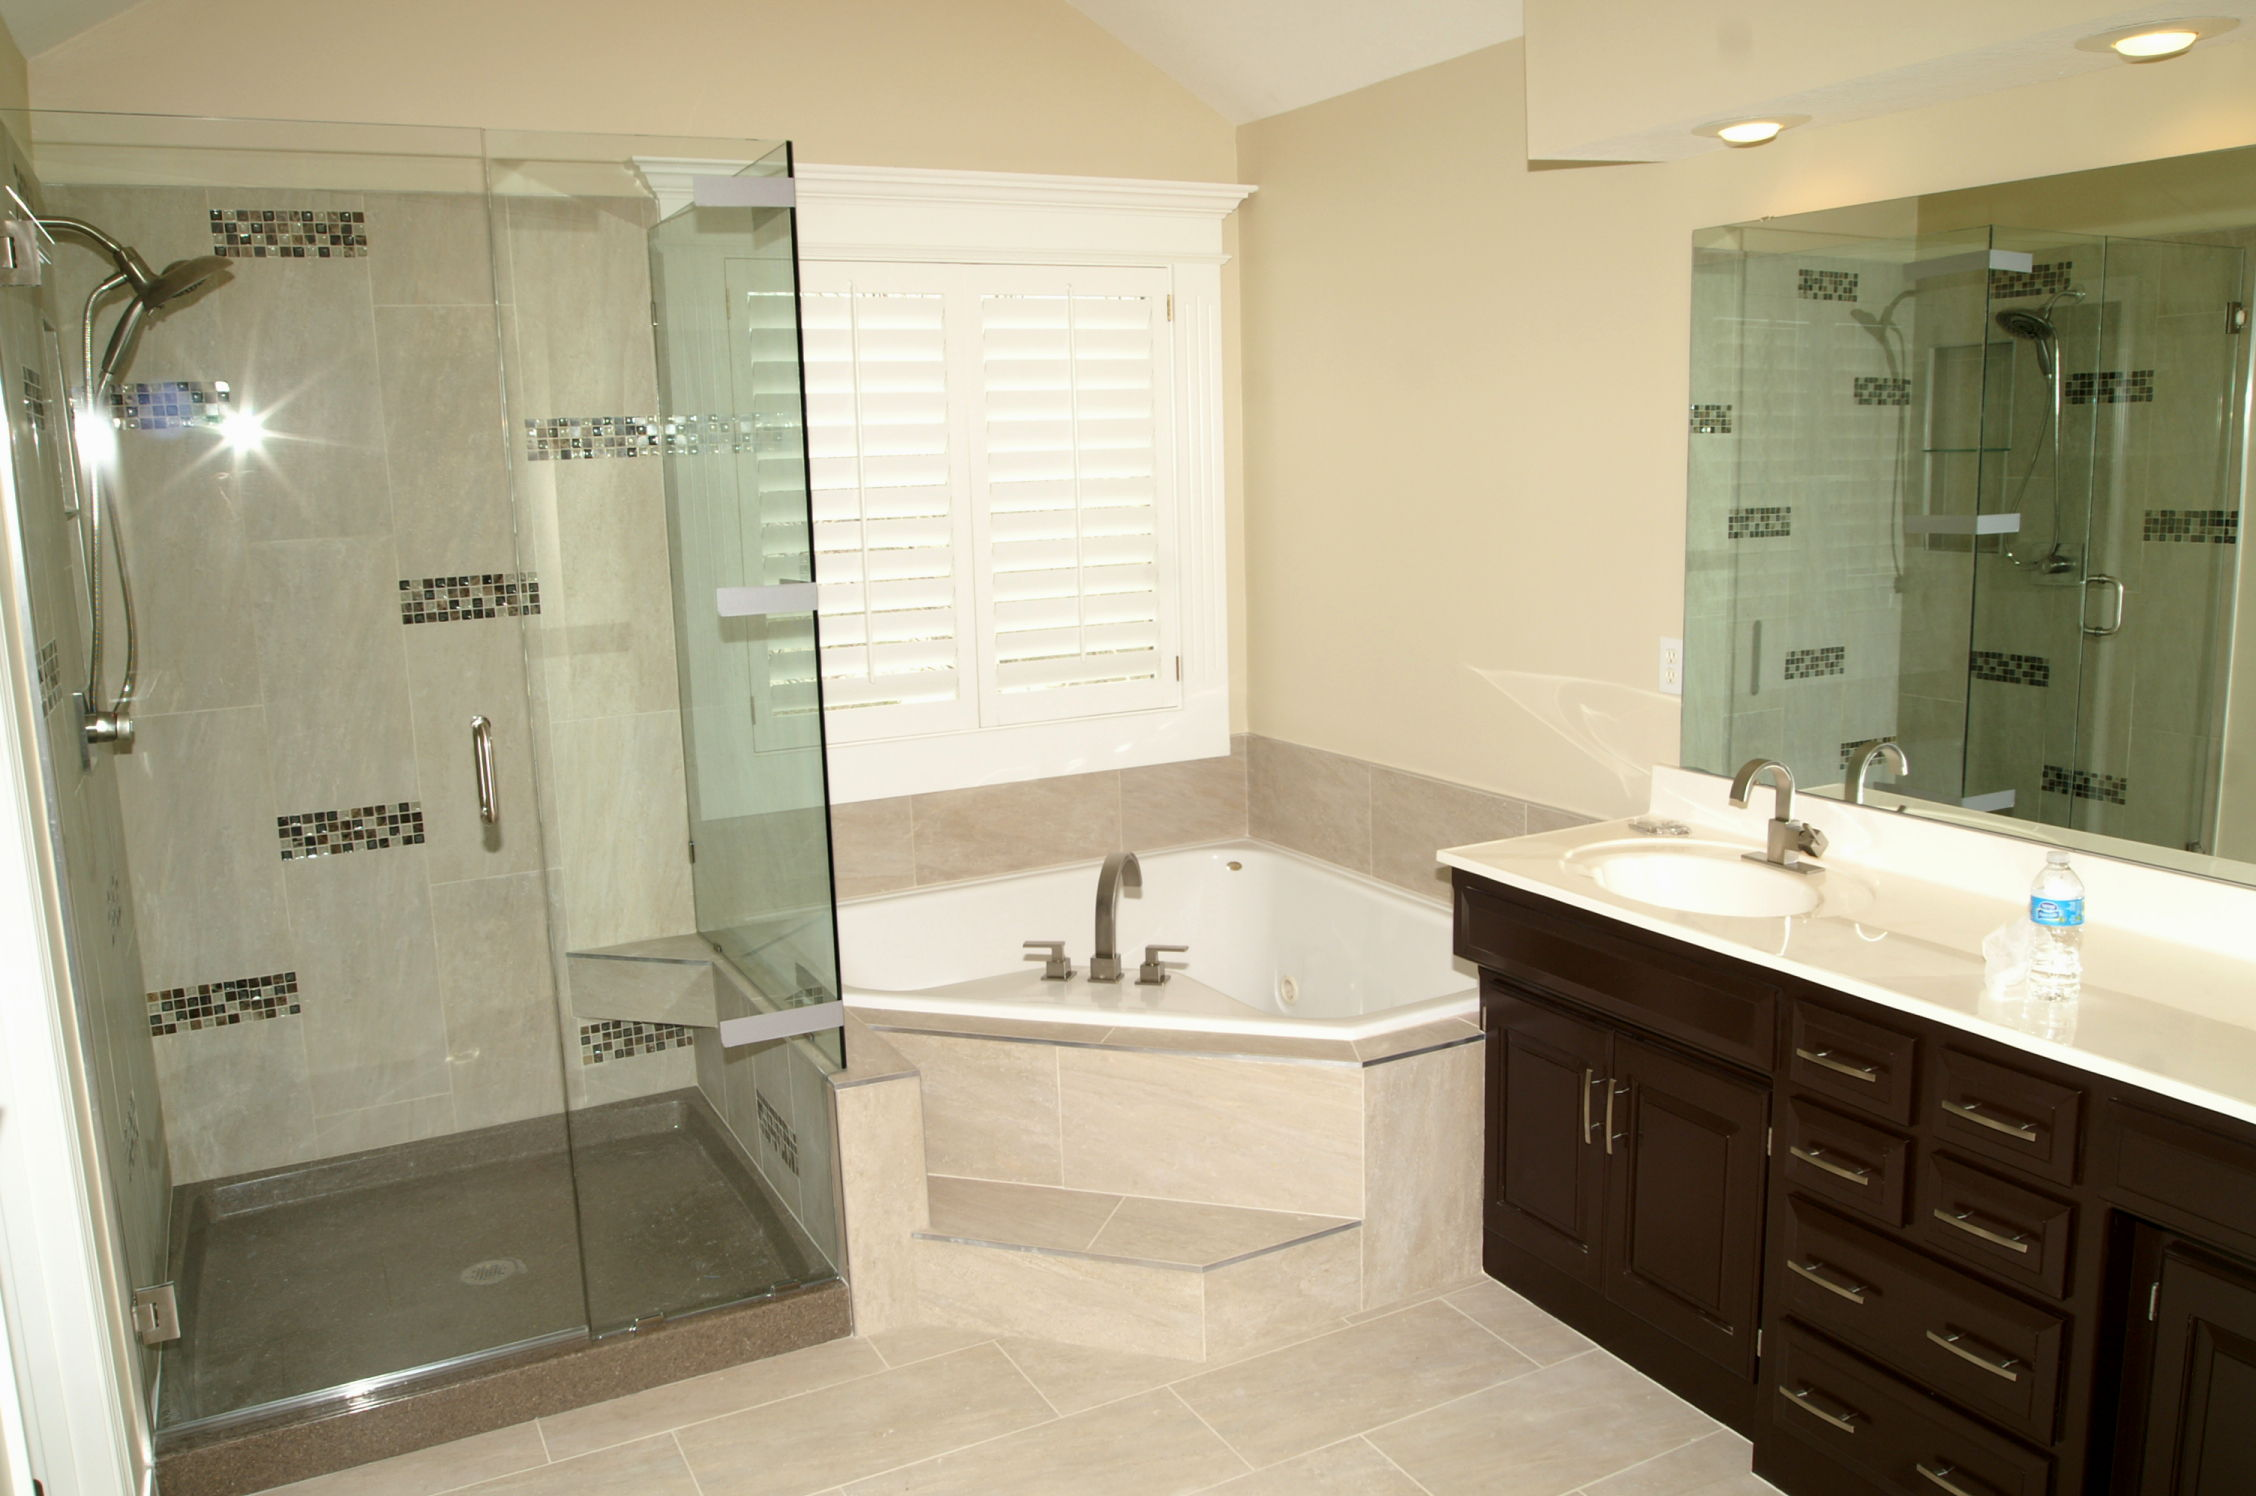 top bathroom designs for small spaces construction-Excellent Bathroom Designs for Small Spaces Concept